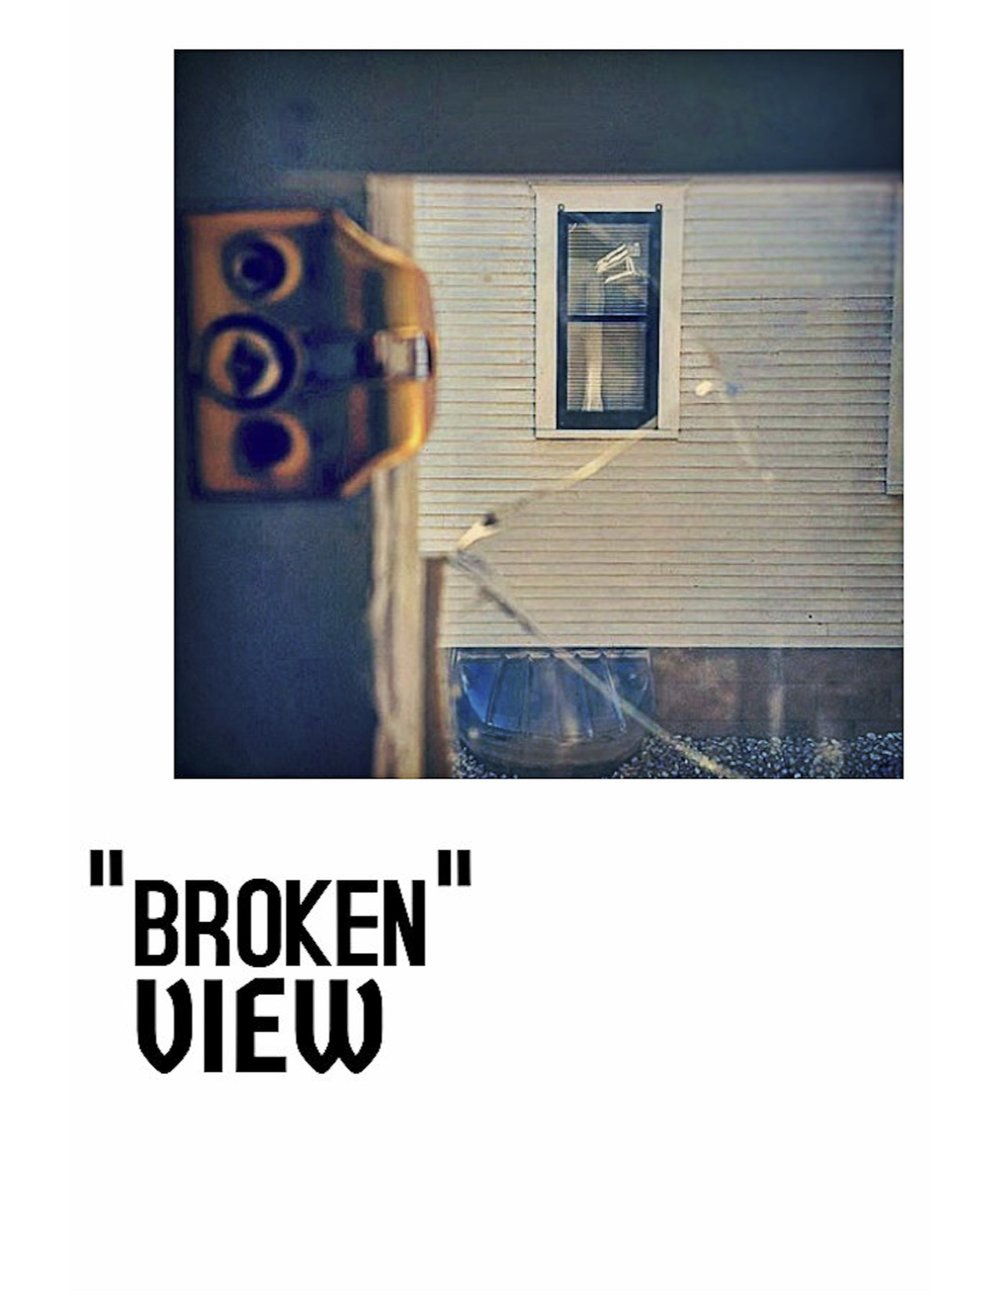 23broken view copy.jpg